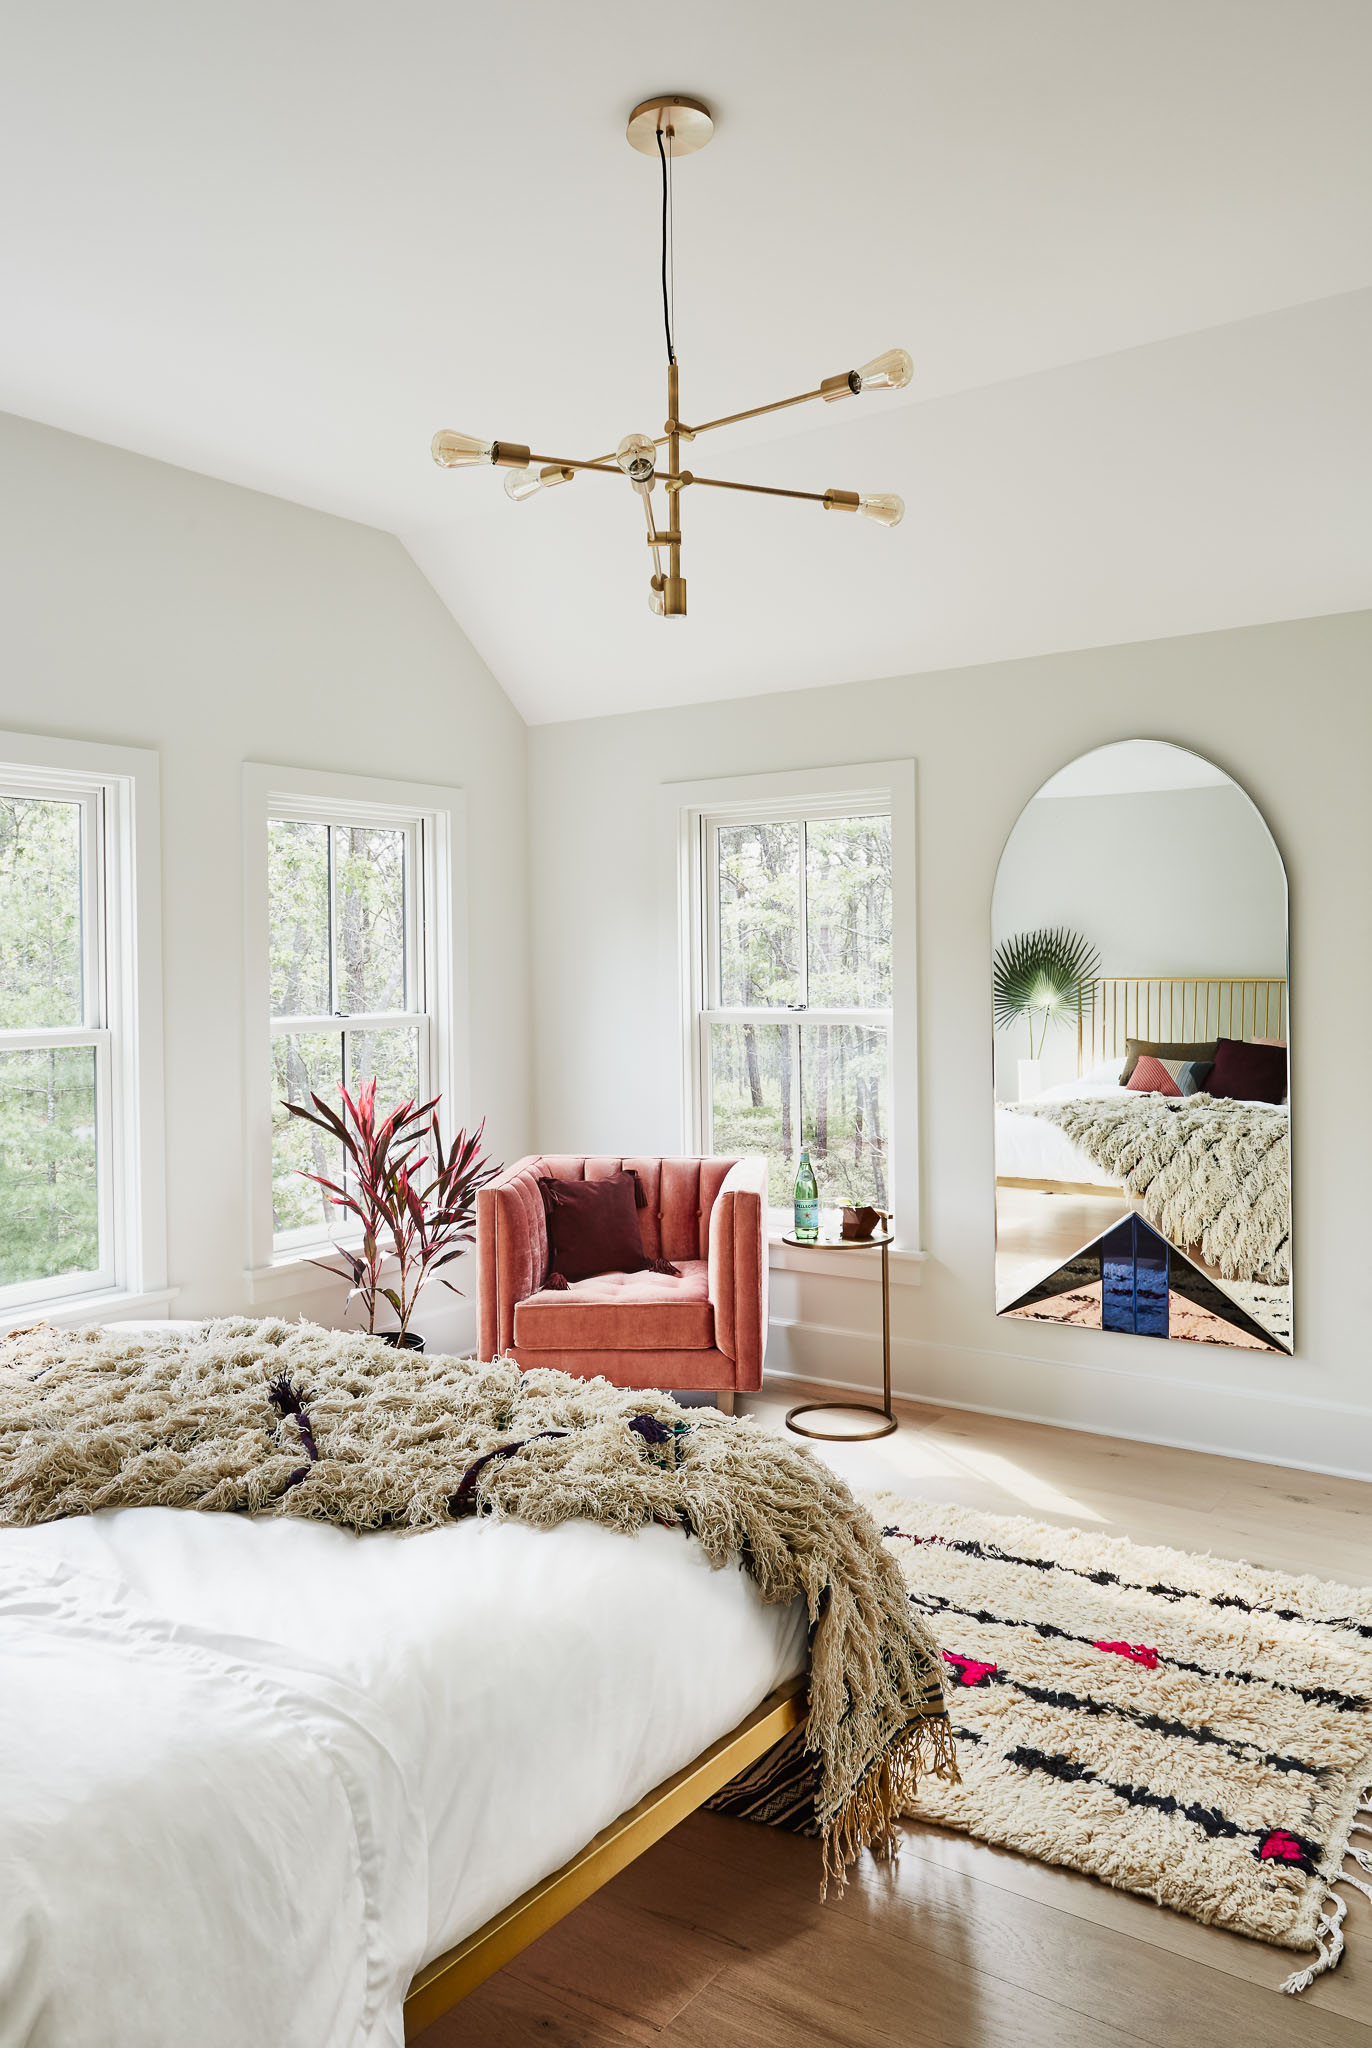 Modern Boho Neutral Bedroom with Gold Accents How to Decorate with Living Coral Pantone's Color of the Year